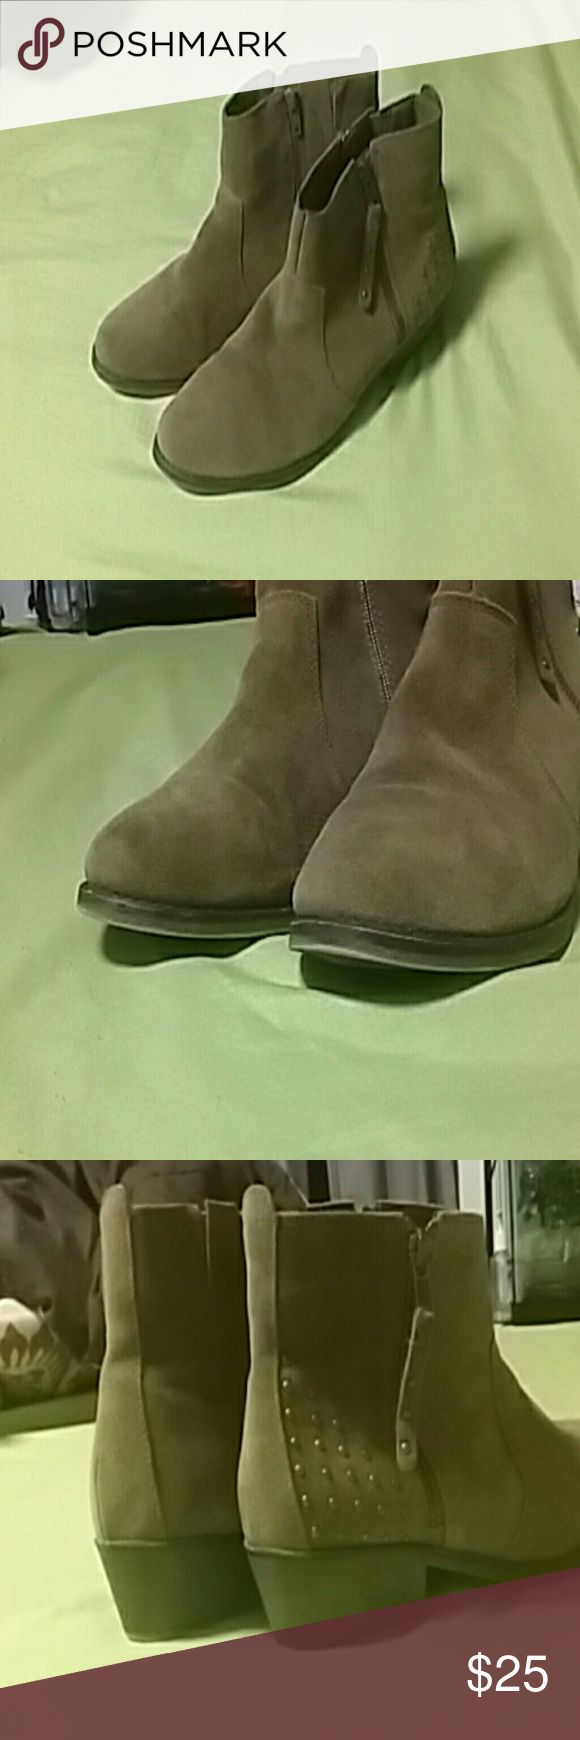 Ankle boots Tan , suede boots w/ zippers on both sides. Used very few times. Clean. Smoke free home. white Mountain  Shoes Ankle Boots & Booties